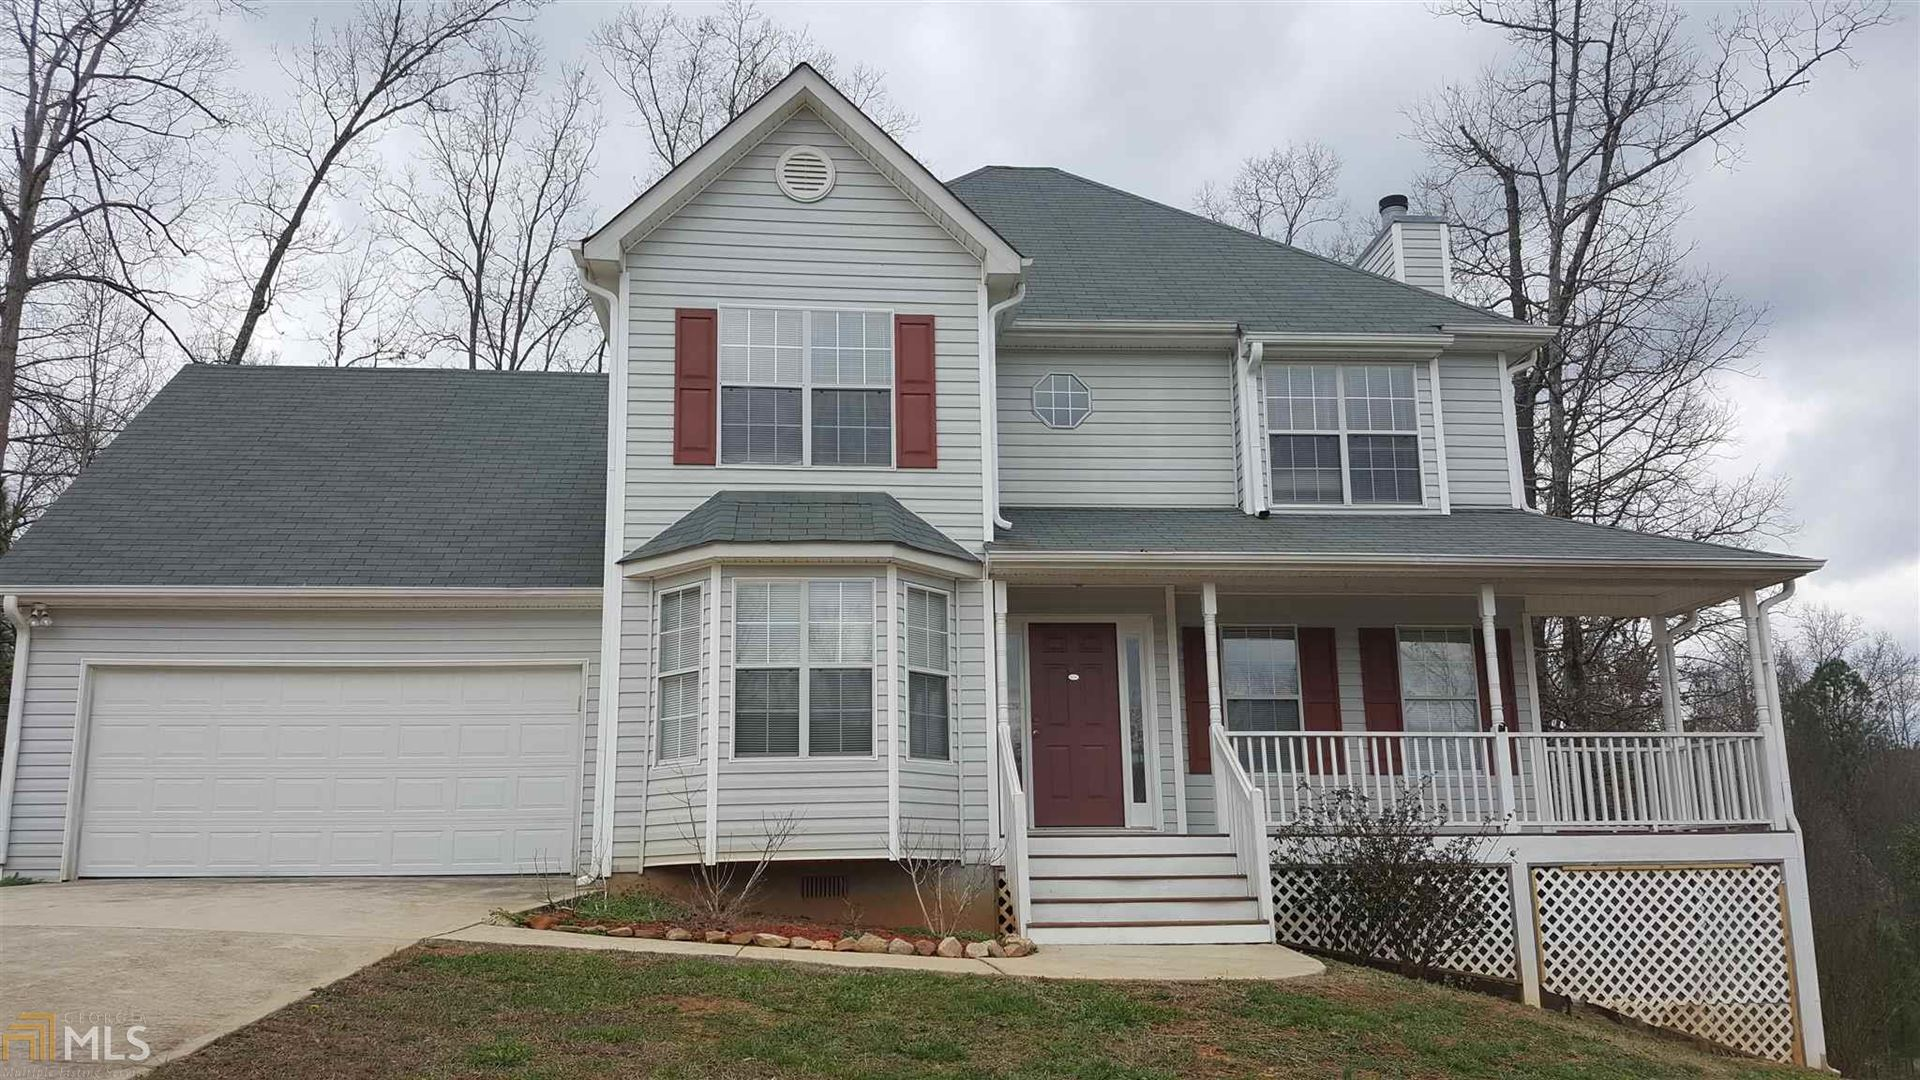 737 Erin Dr, Stockbridge, GA 30281 - #: 8828525